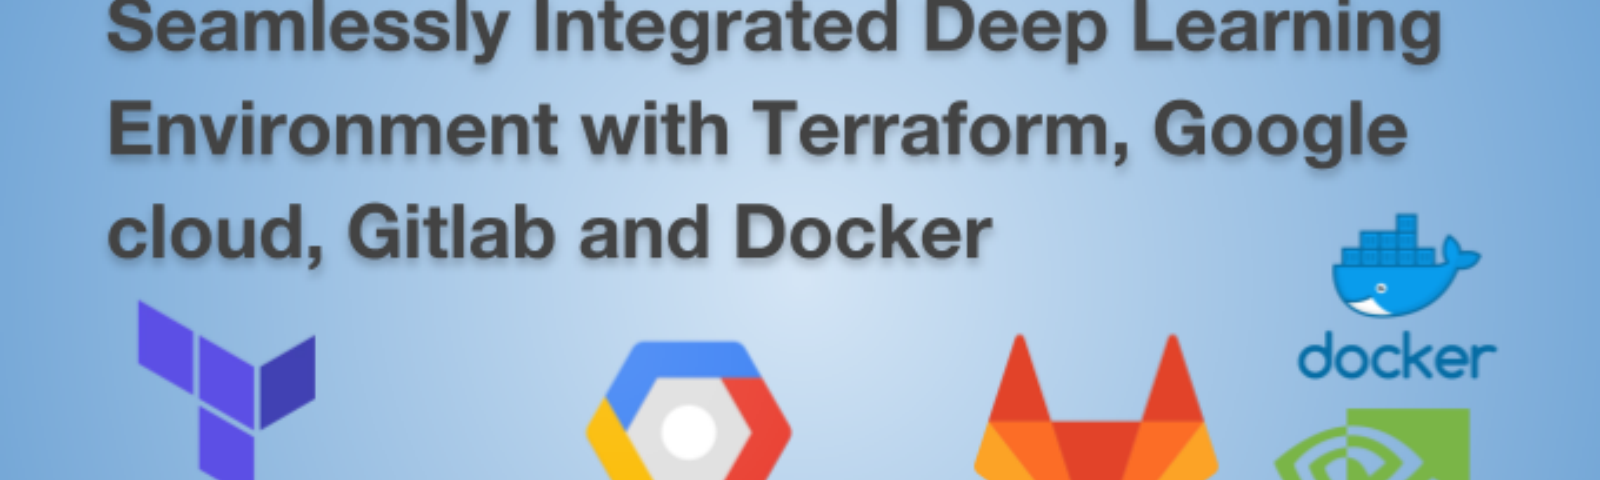 Seamlessly Integrated Deep Learning Environment with Terraform